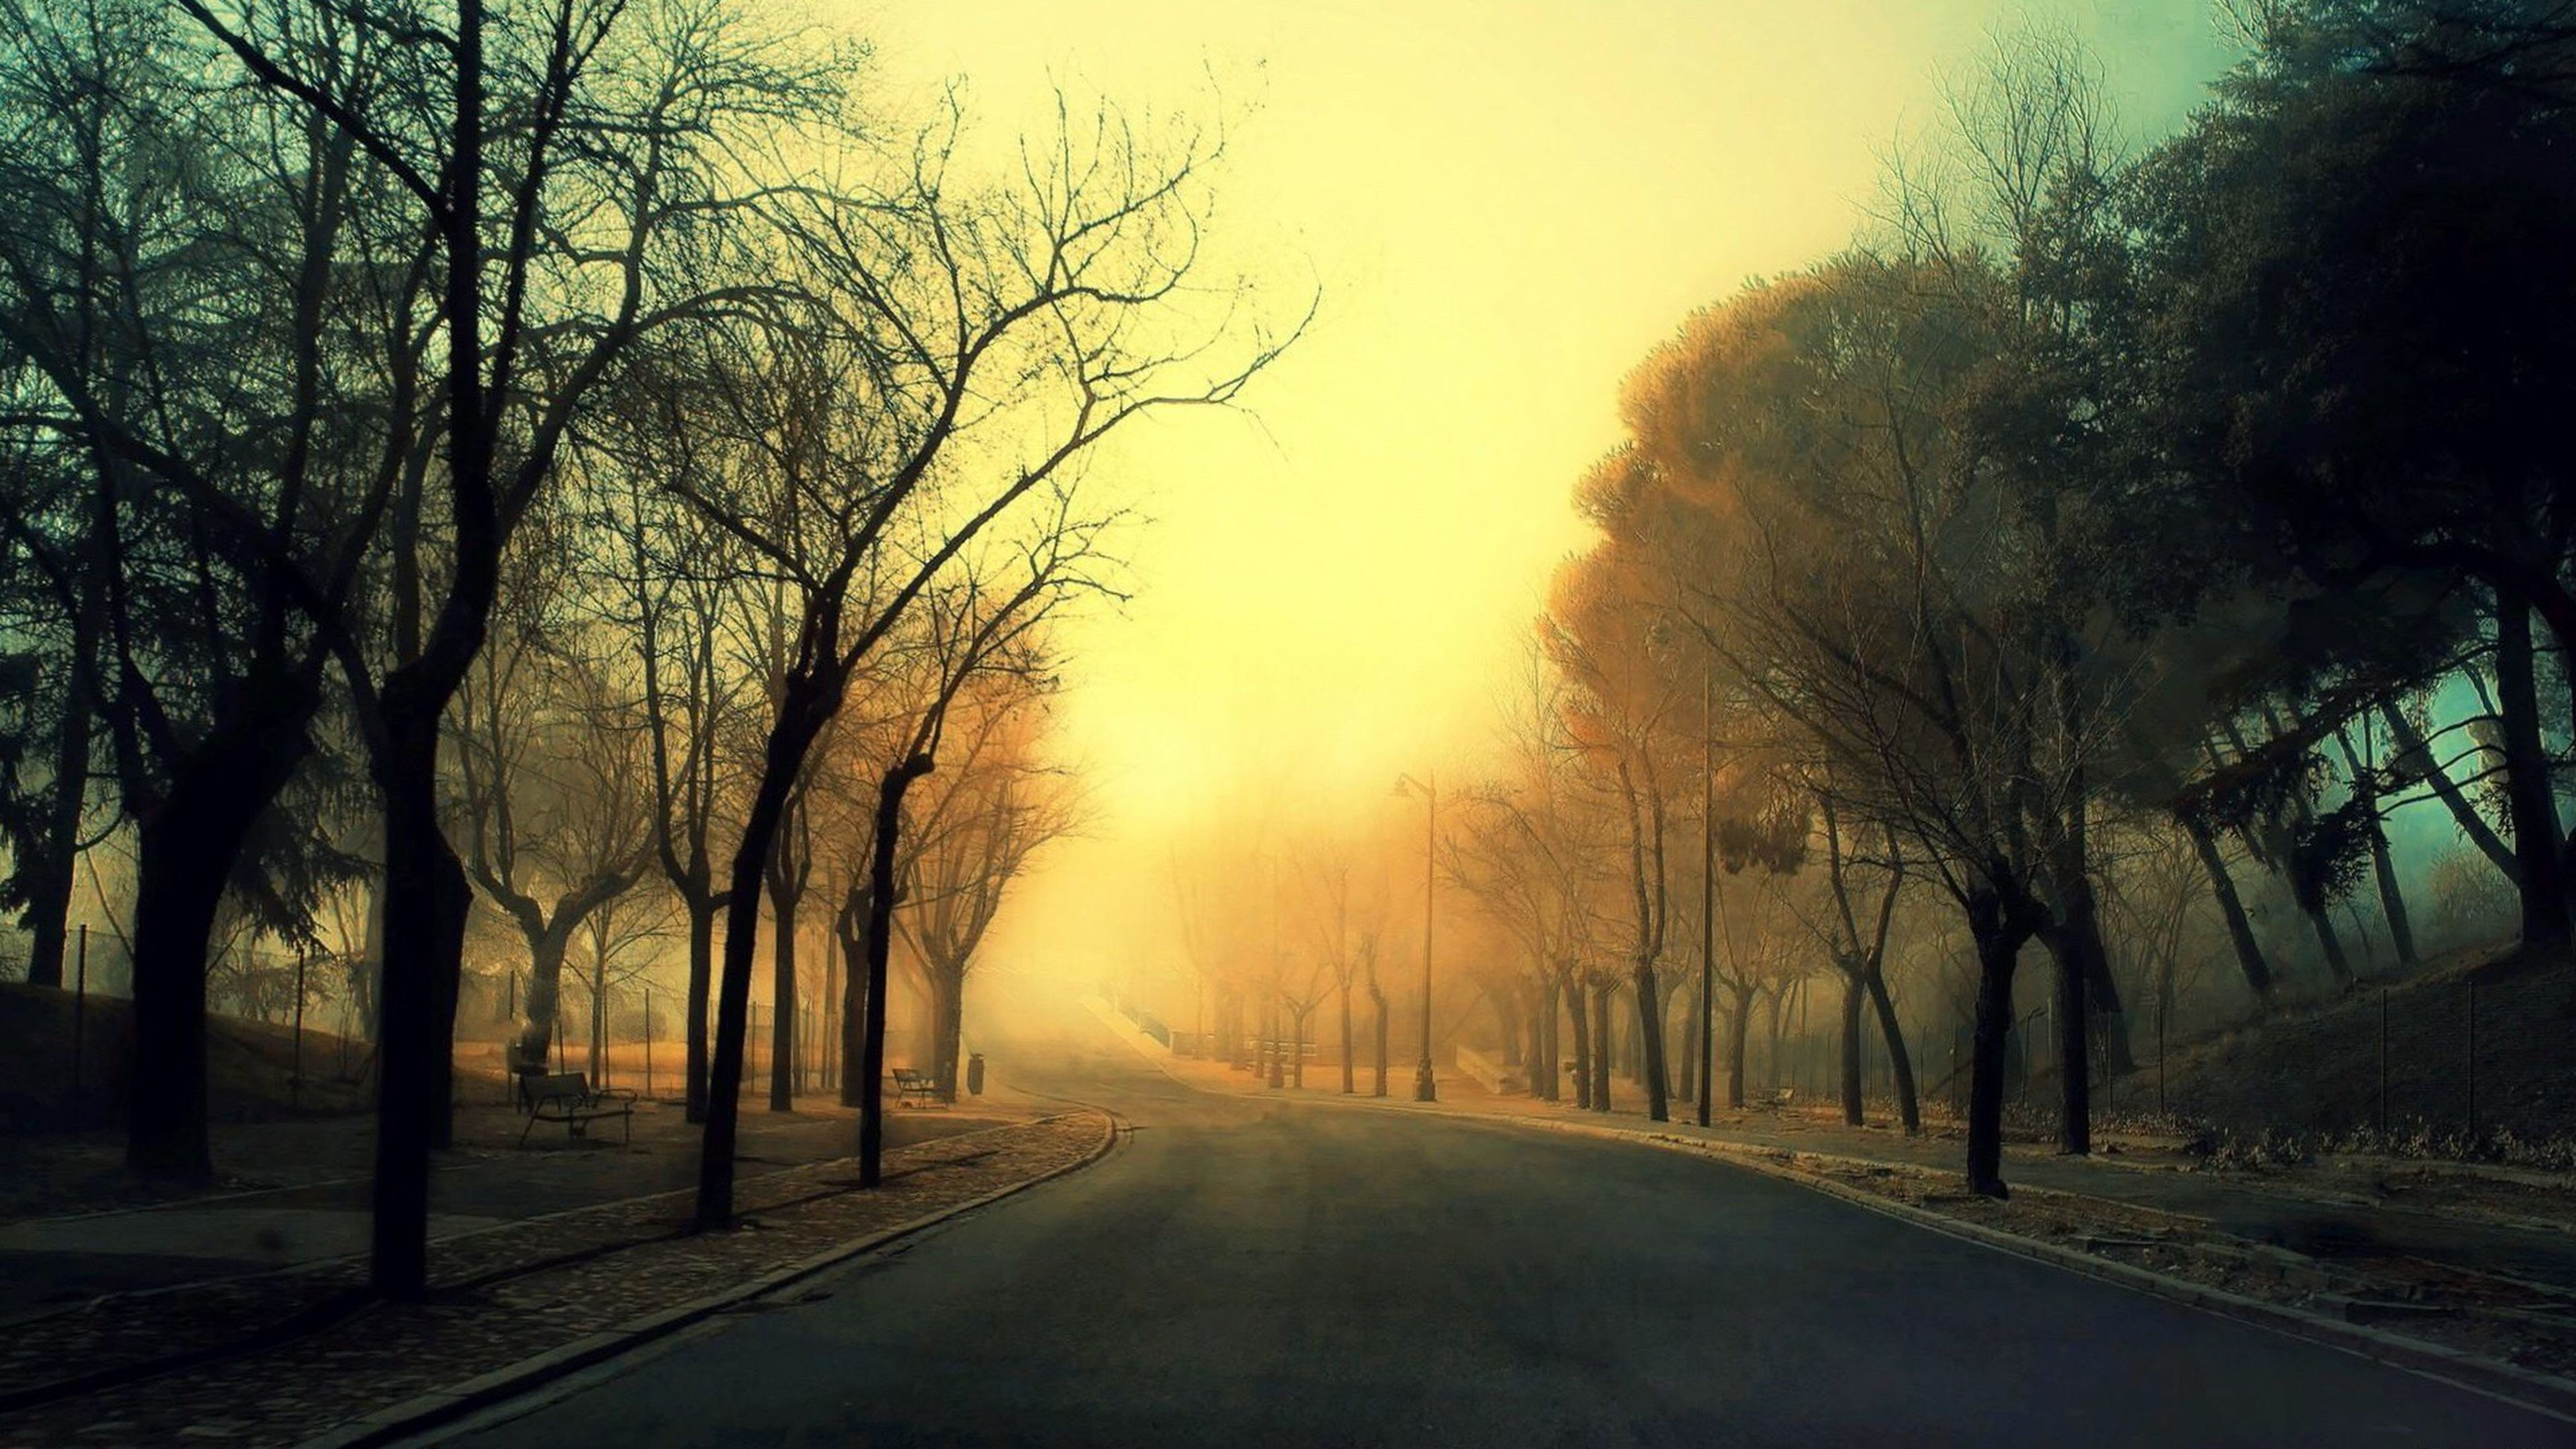 tree, road, bare tree, the way forward, transportation, diminishing perspective, tranquility, tranquil scene, road marking, scenics, fog, treelined, empty road, branch, nature, beauty in nature, vanishing point, tree trunk, orange color, foggy, outdoors, non-urban scene, sky, day, solitude, mist